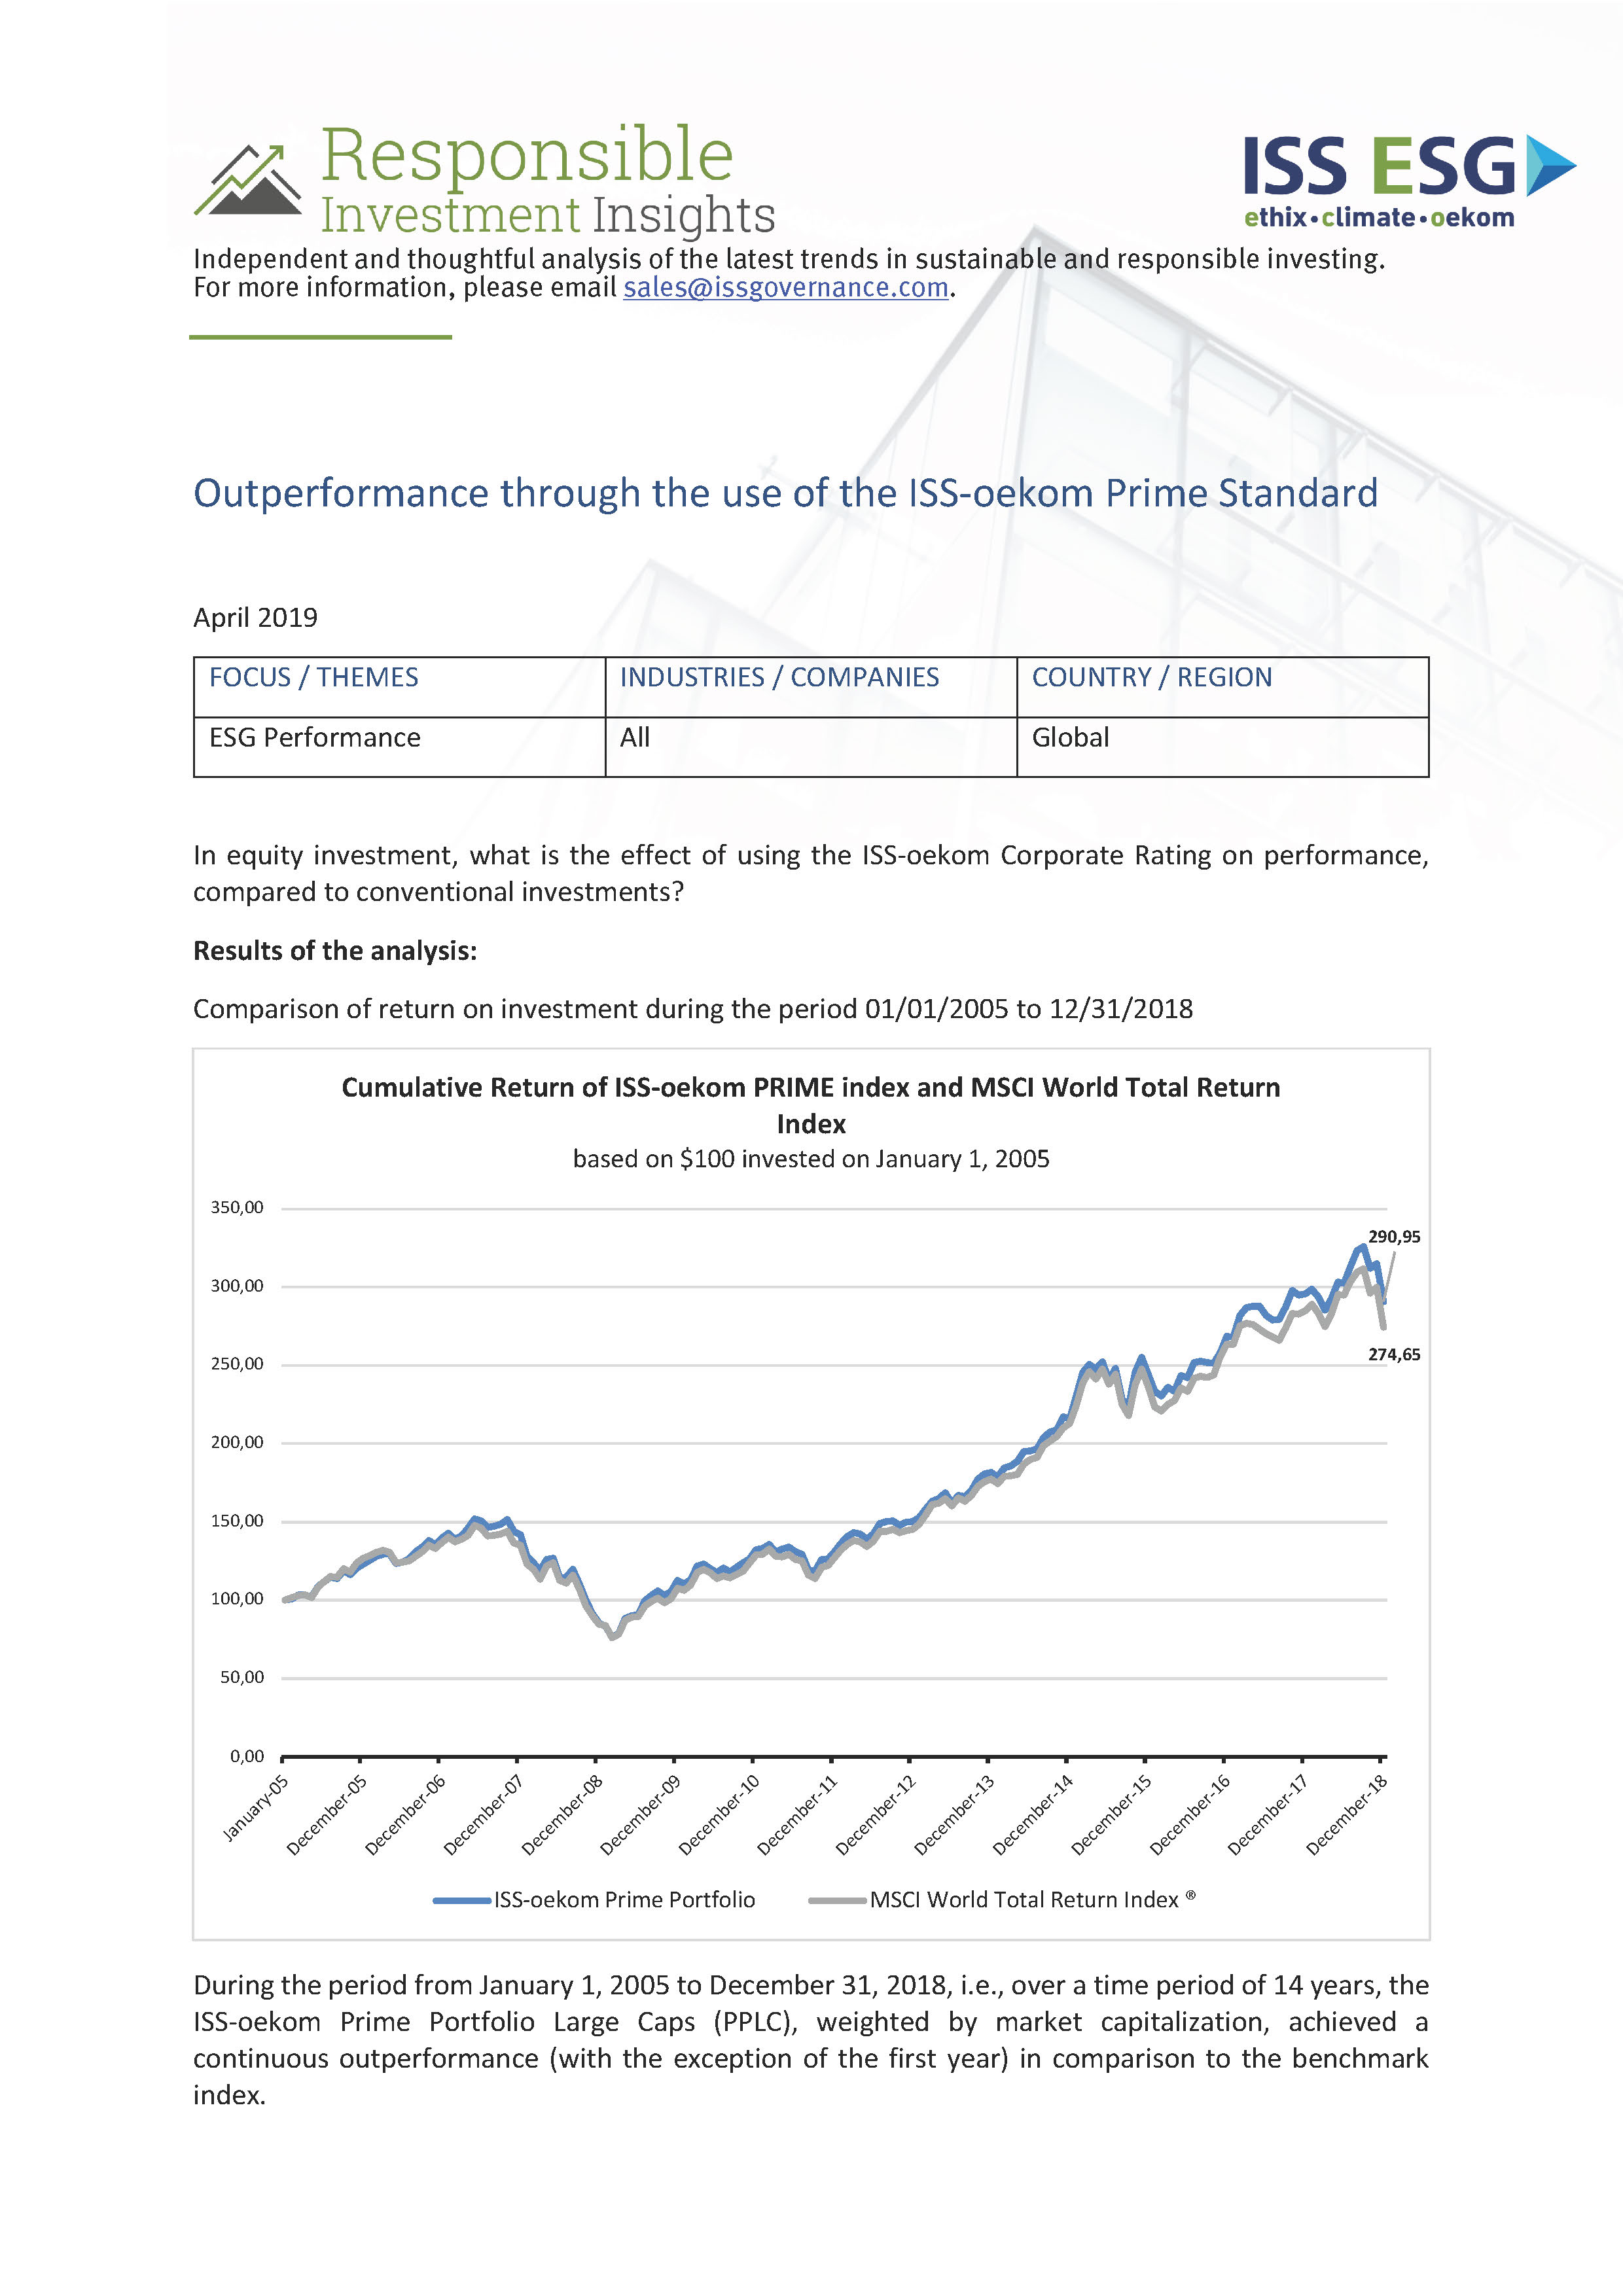 Outperformance through the use of the ISS-oekom Prime Standard